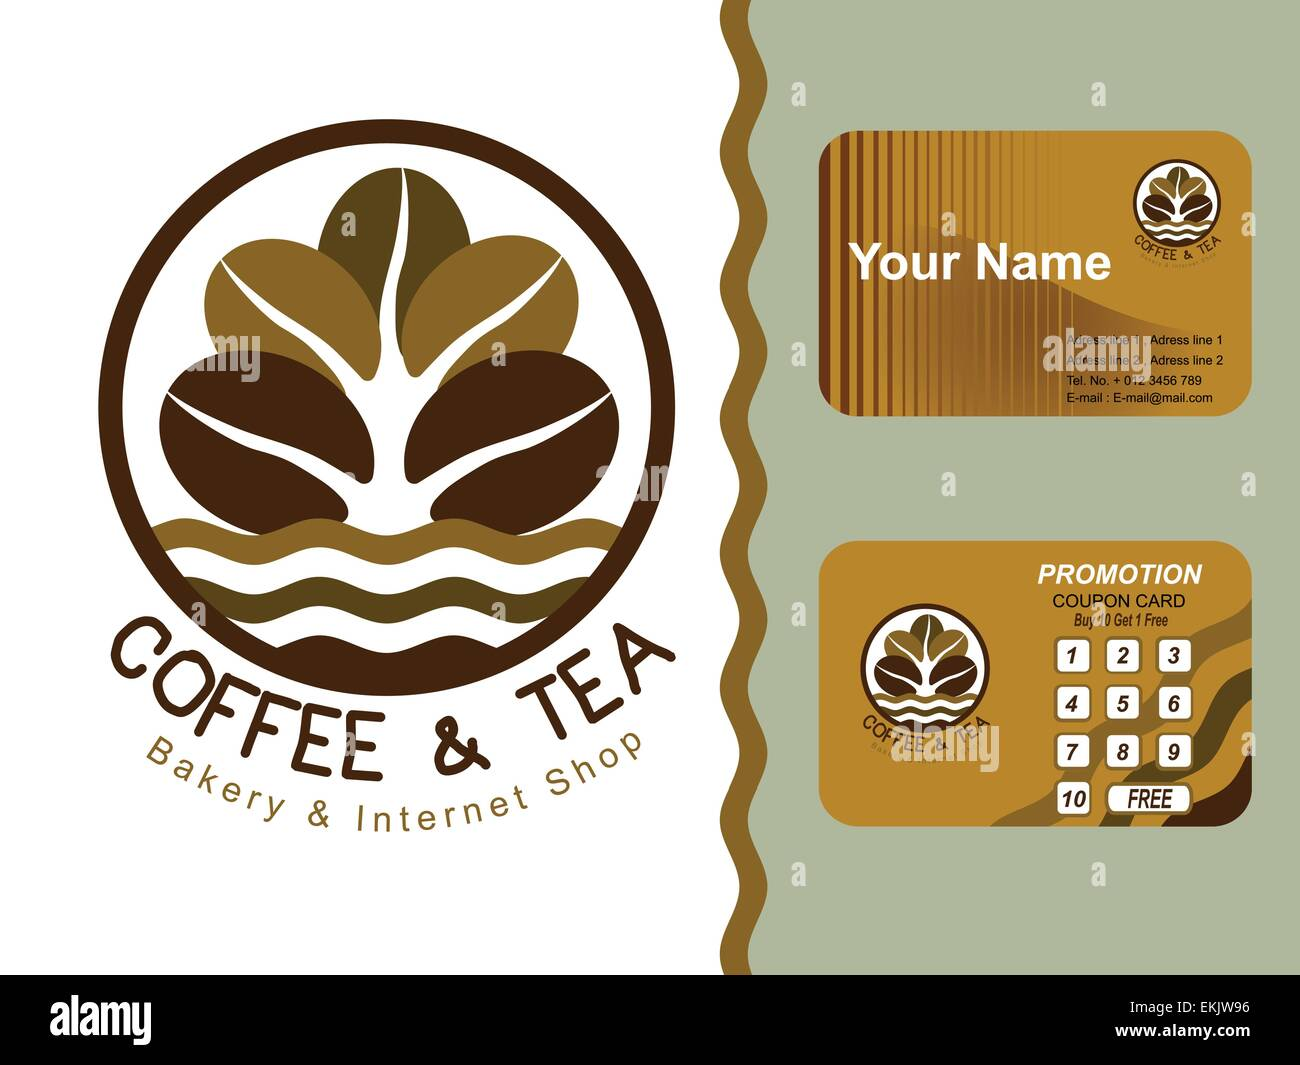 Coffee shop icon logo and business cards design Stock Vector Art ...